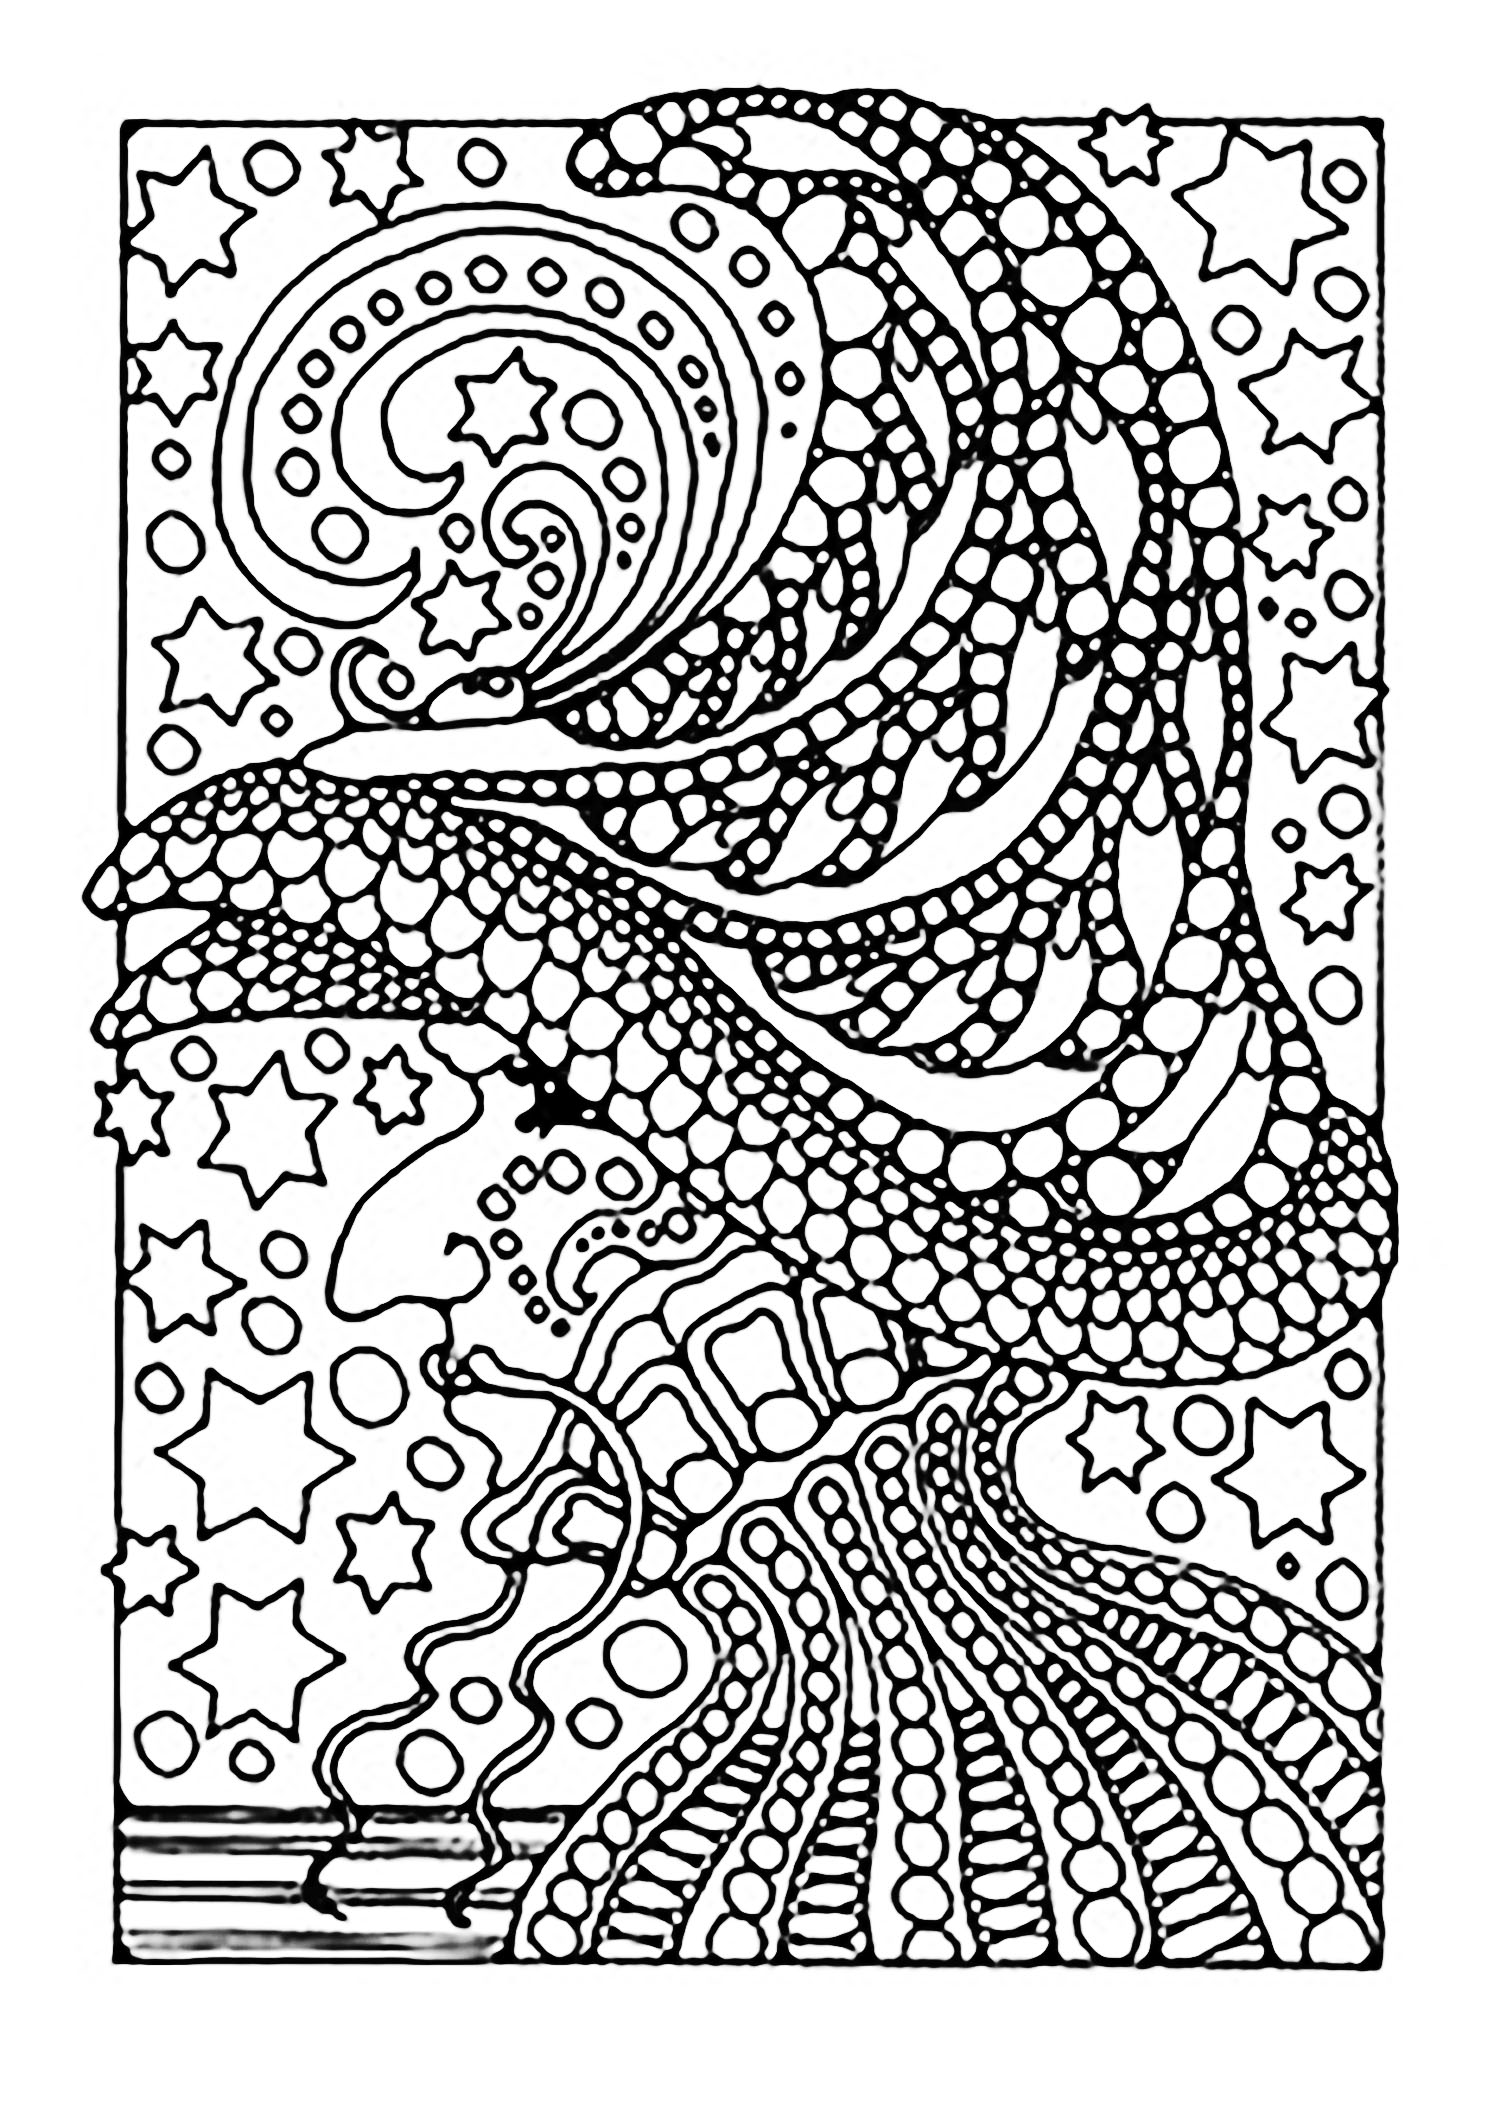 witch coloring pages for adults Halloween witch and stars   Halloween Adult Coloring Pages witch coloring pages for adults